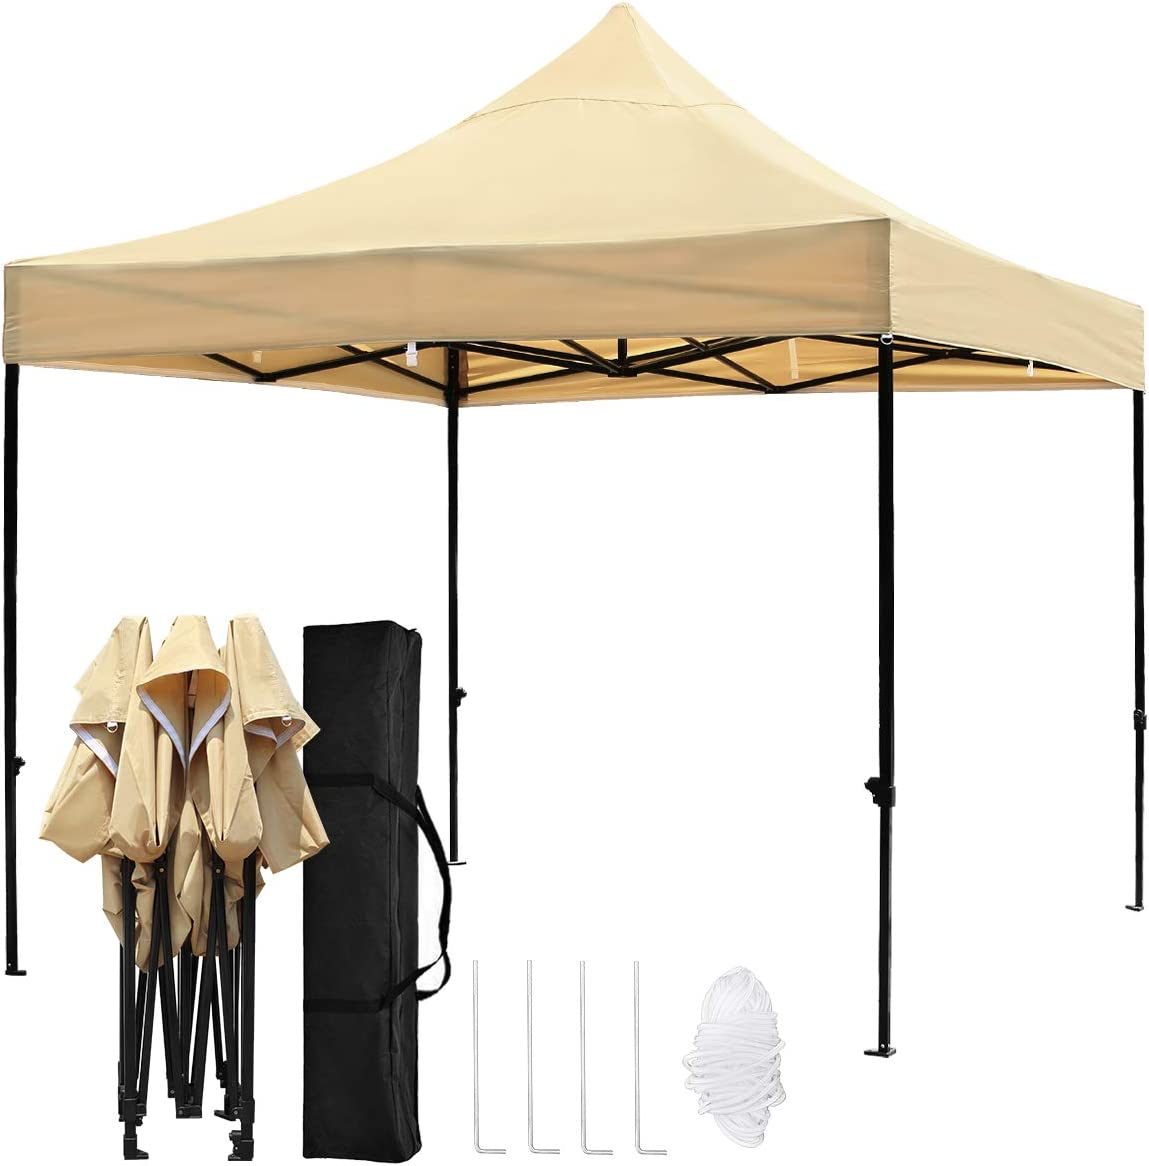 TopCamp 10x10ft Pop up Canopy Tent, Shade for Beach Heavy Duty Waterproof Outdoor Commercial Tents Instant Sun Shelter Tan 10 x 10 EZ